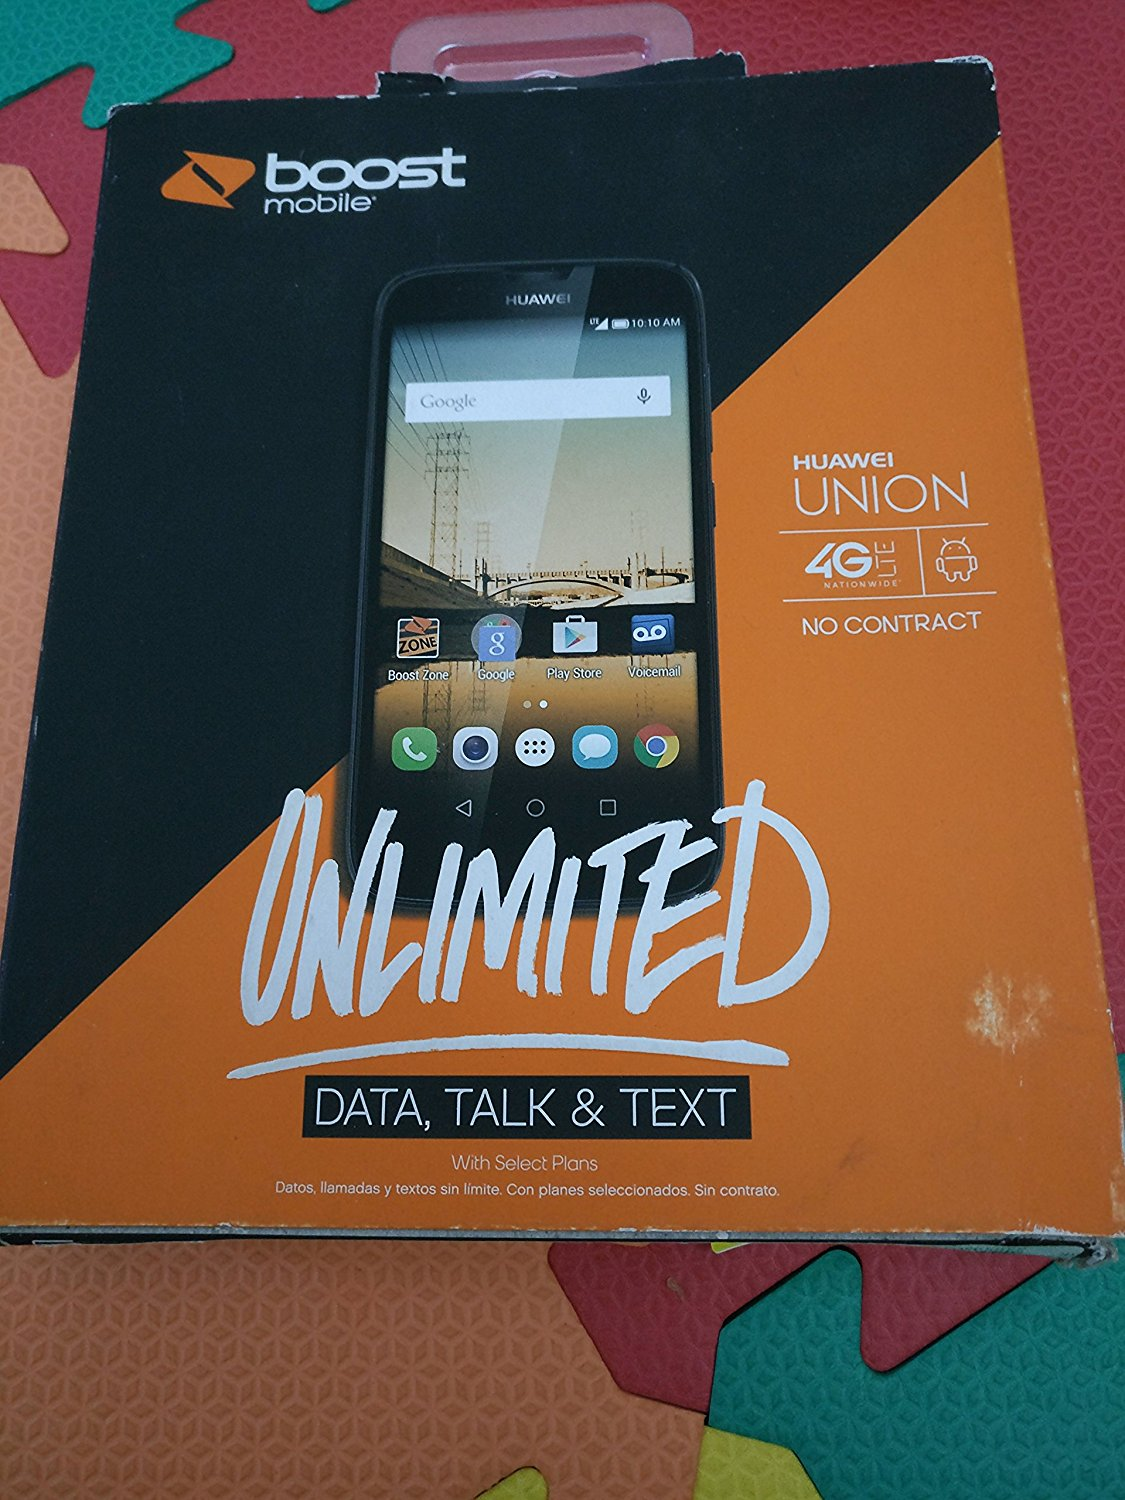 Huawei Union No Contract Phone - Black - (Boost Mobile)